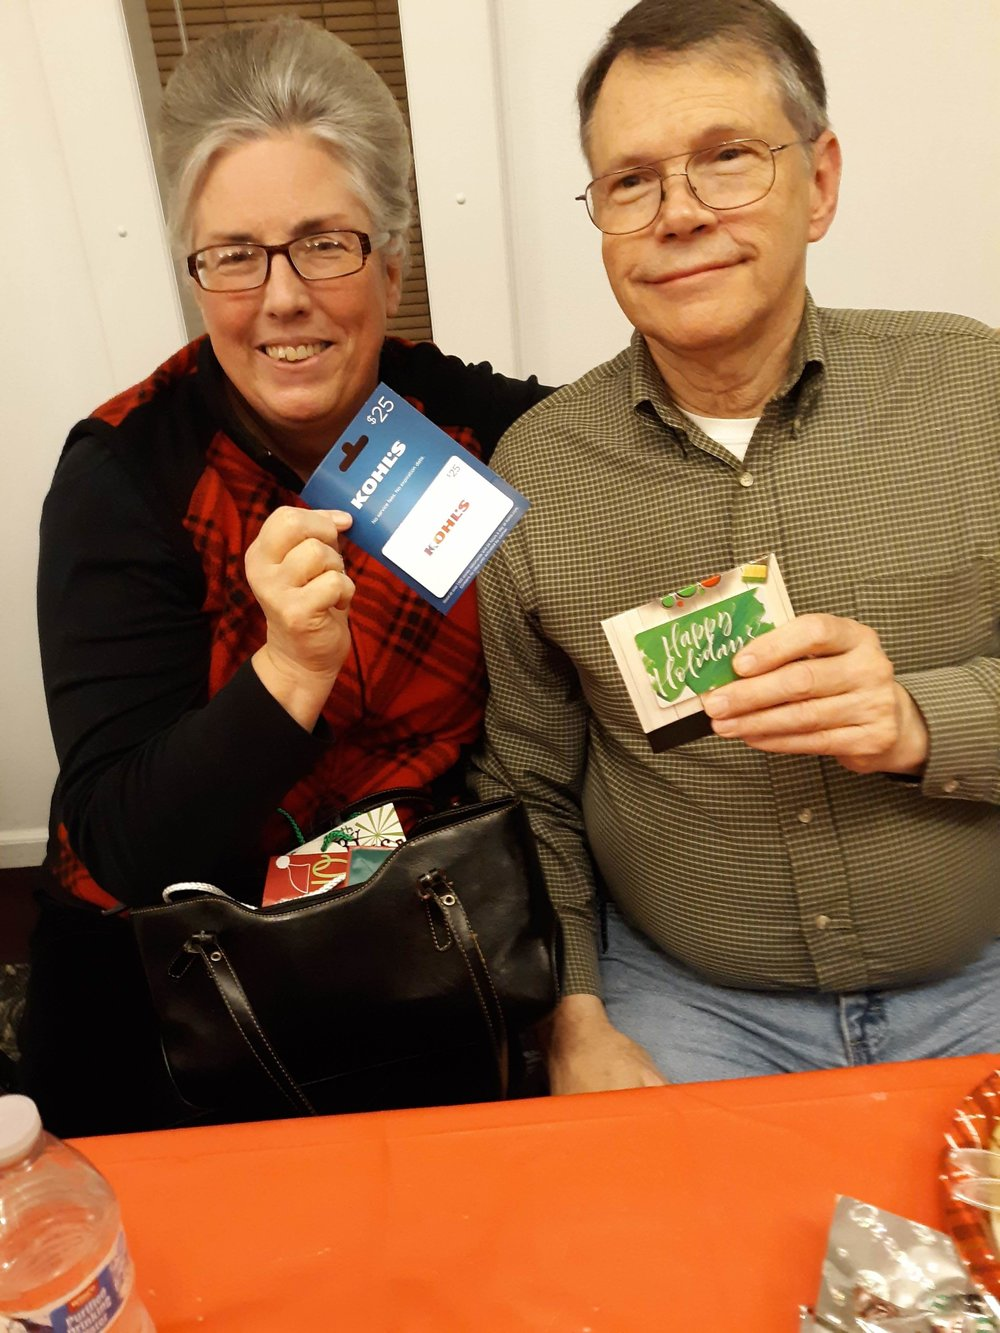 Sis. Sandy scored a Kohl's gift card and Bro. Steve's was a Home Depot gift card